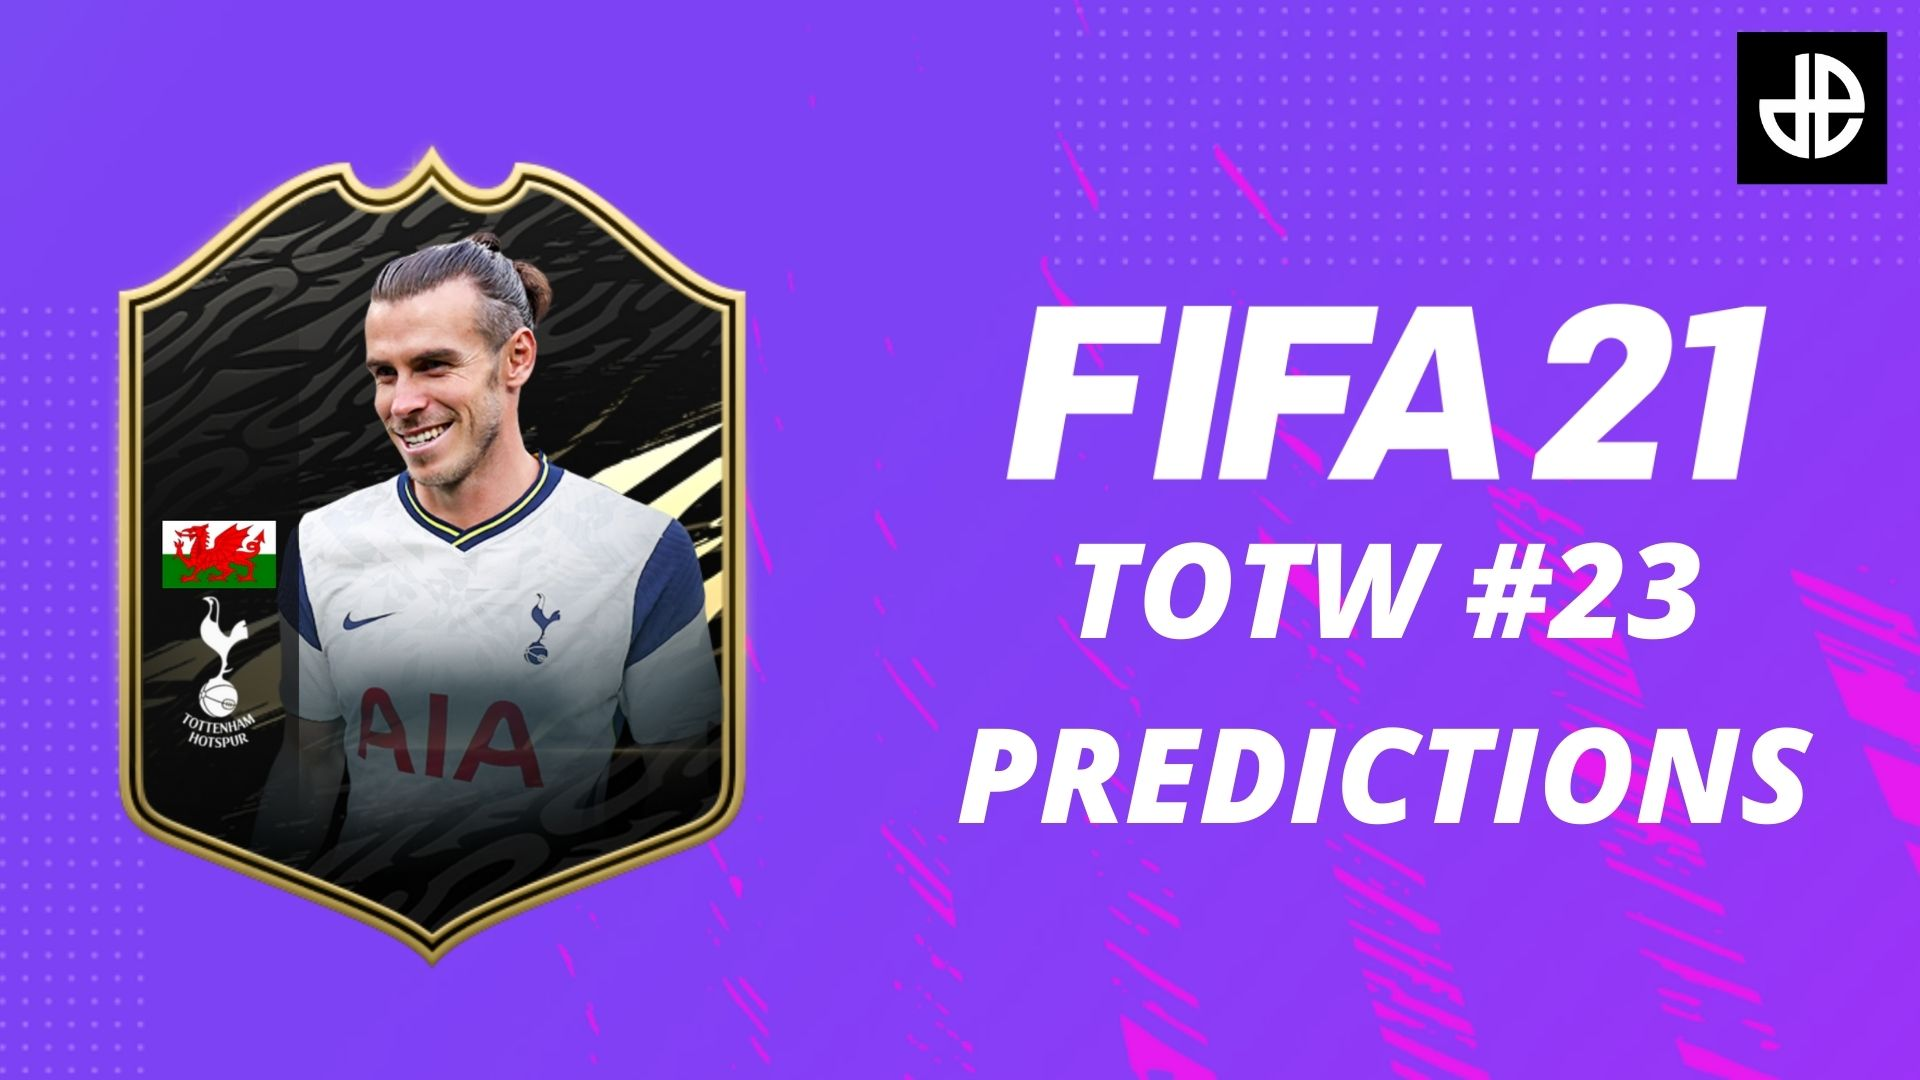 FIFA 21 TOTW 23 predictions with a Gareth Bale card